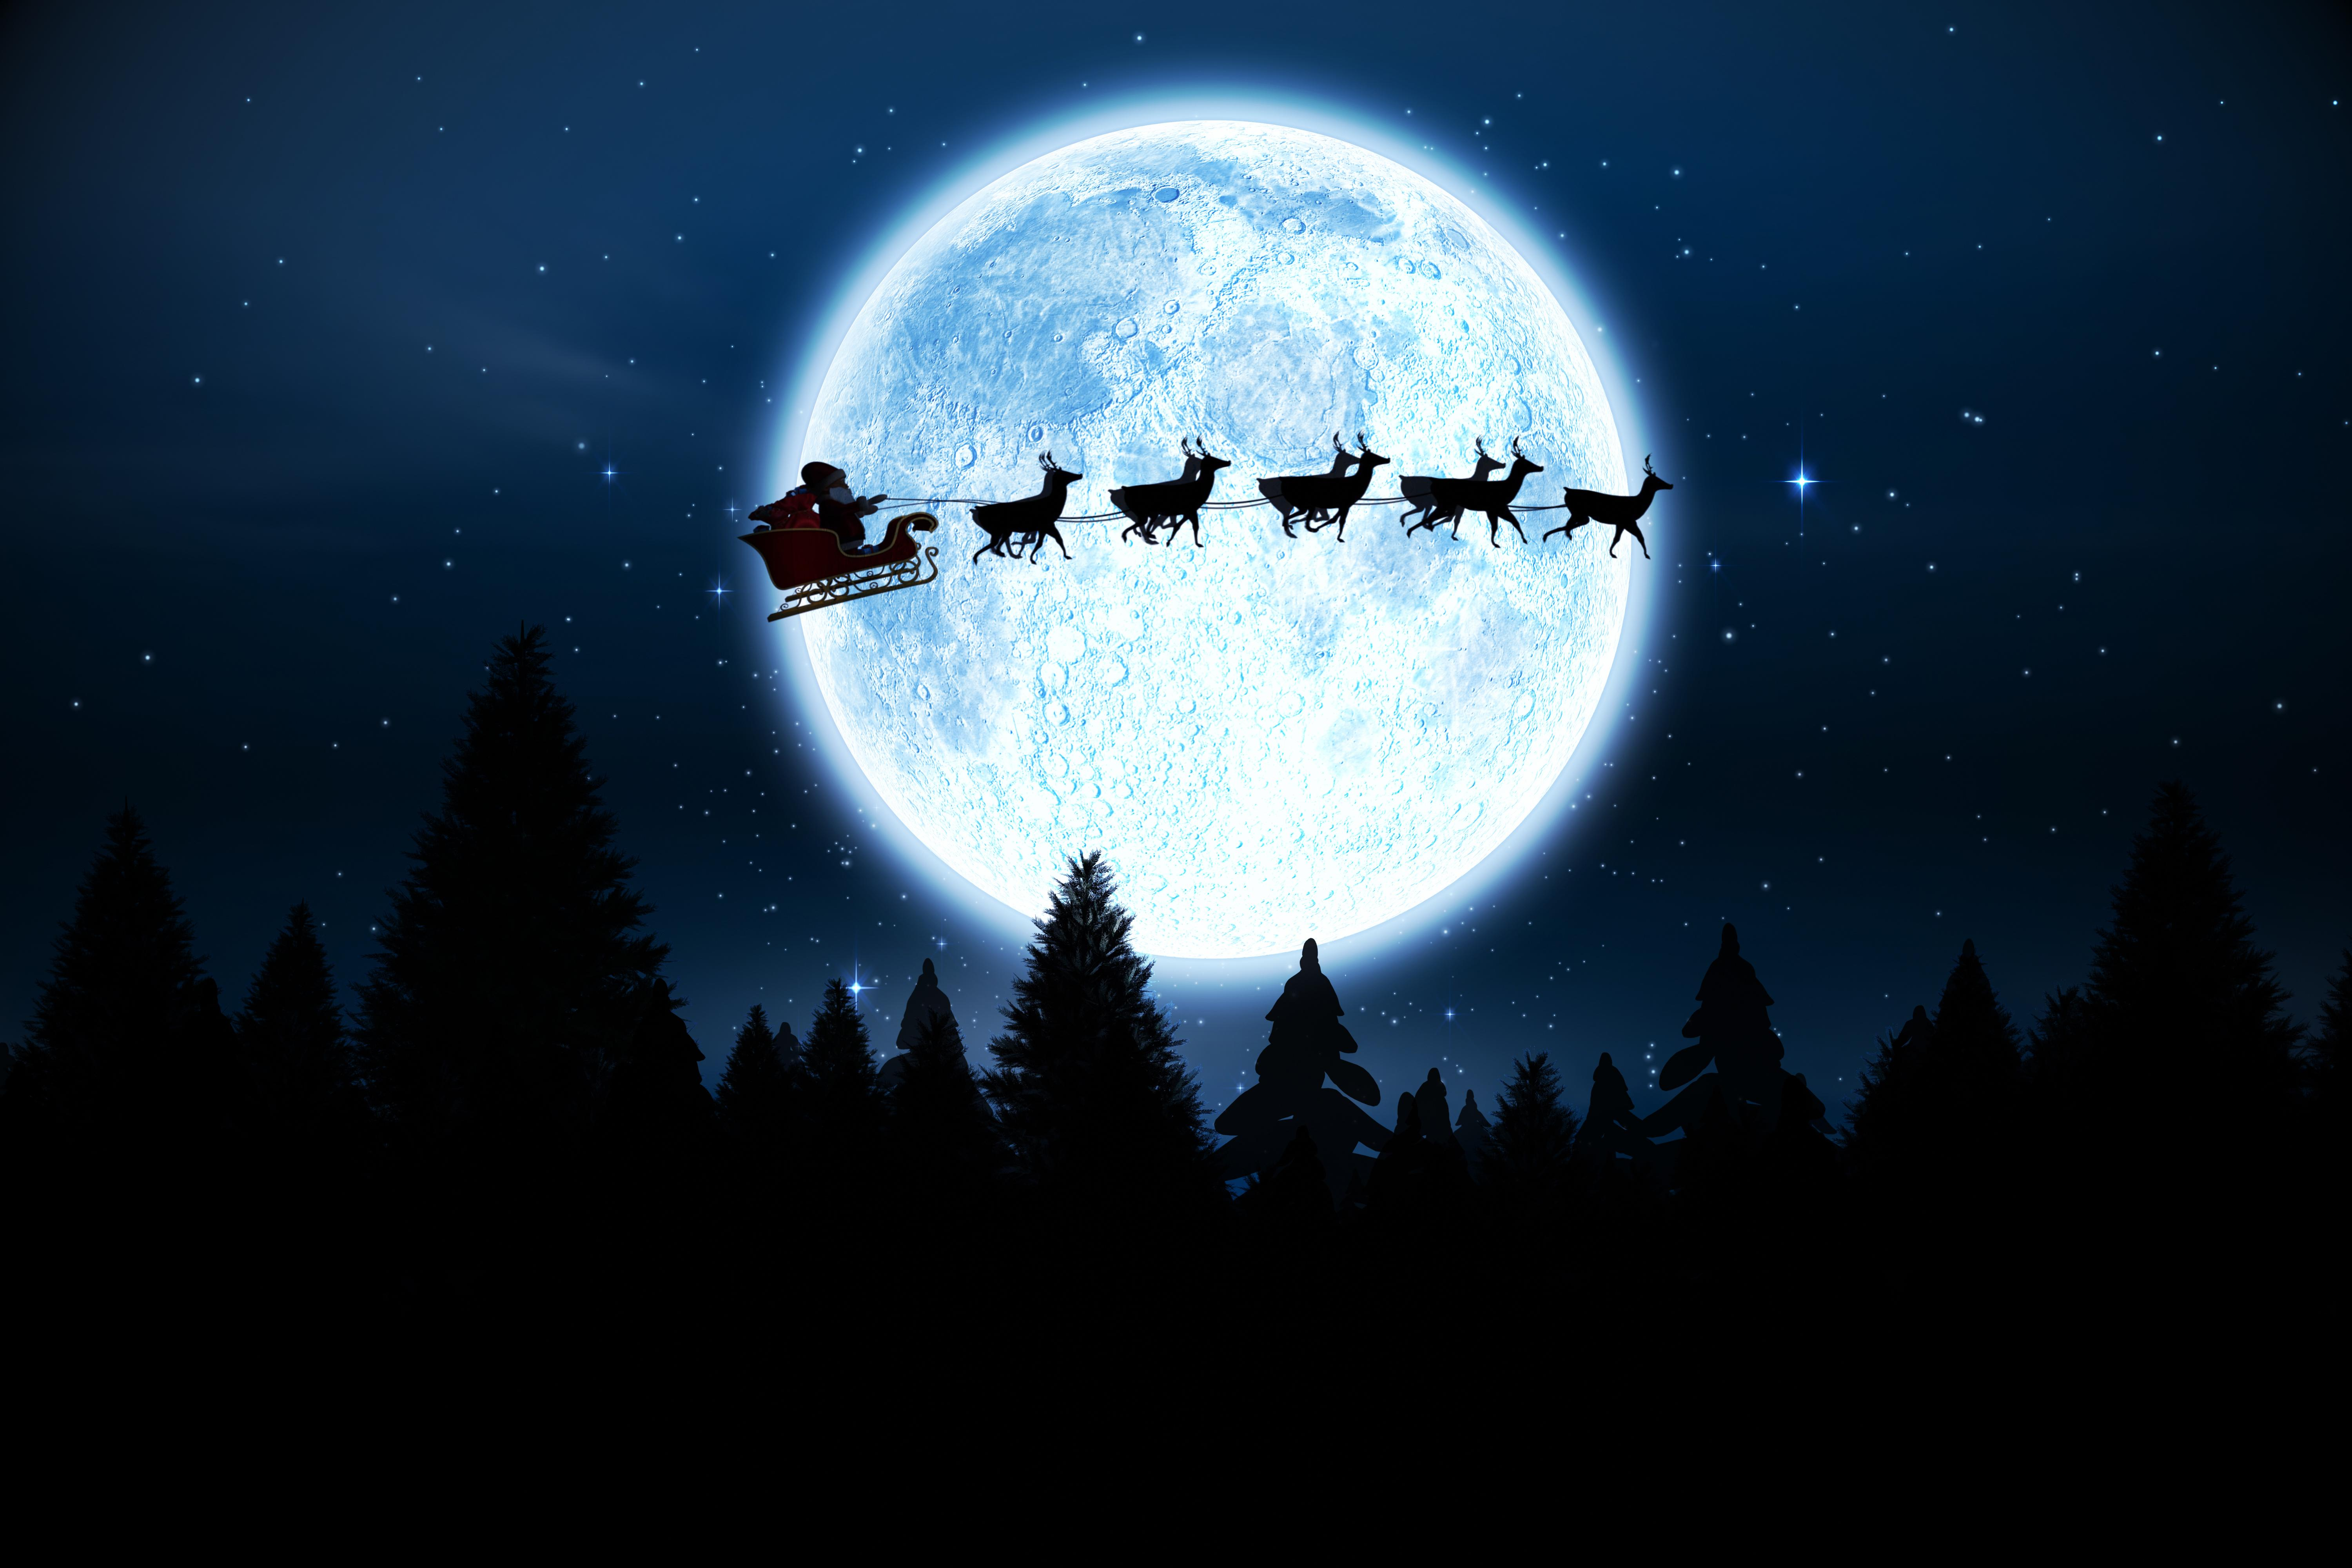 How Does Santa Claus Deliver All the Presents on Christmas